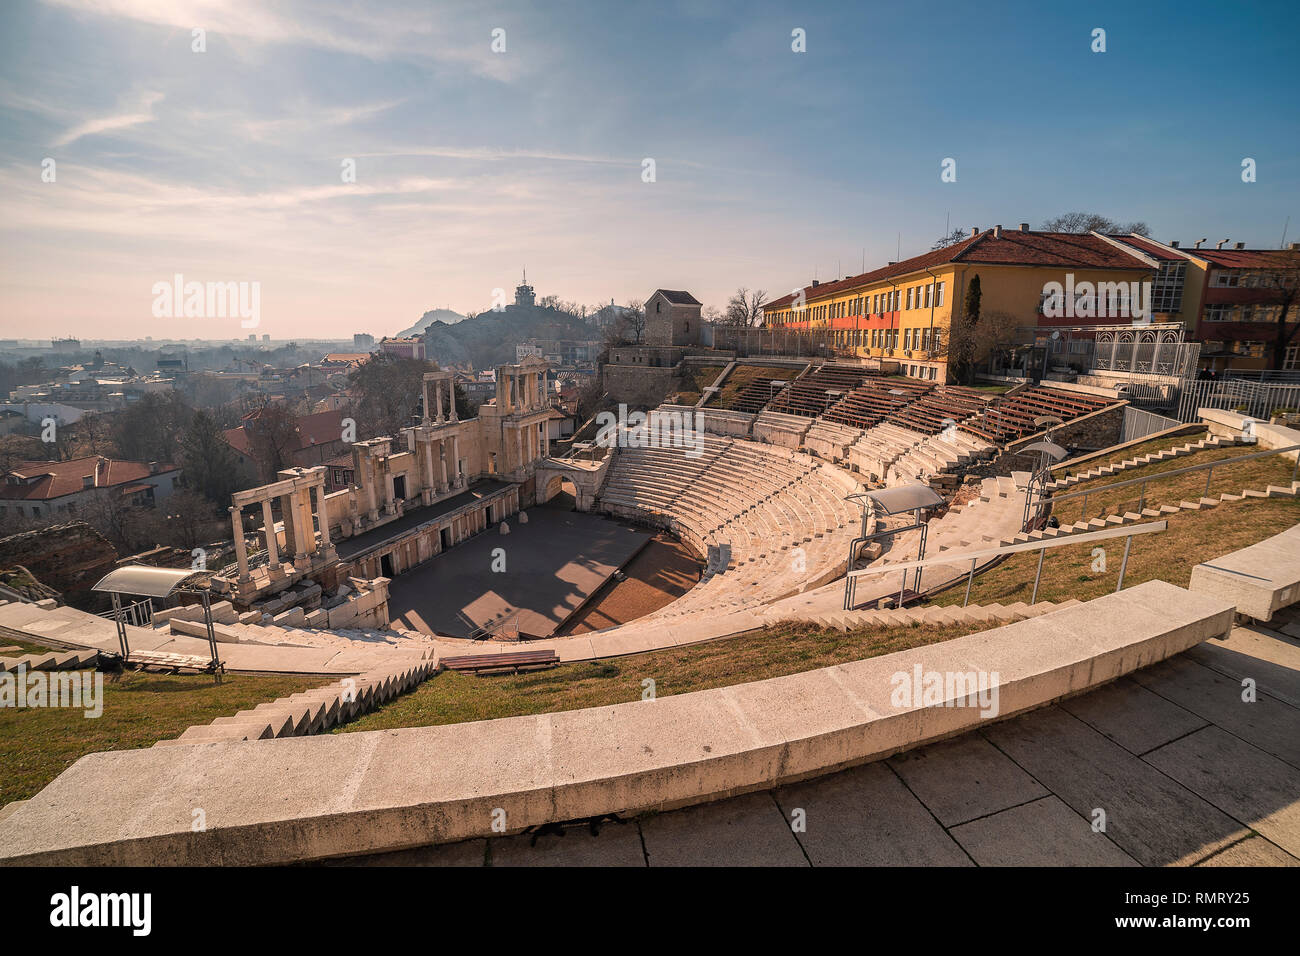 Sunset over ancient roman amphitheater in Plovdiv - european capital of culture 2019, Bulgaria. The old town is included in UNESCO World Herritage - Stock Image